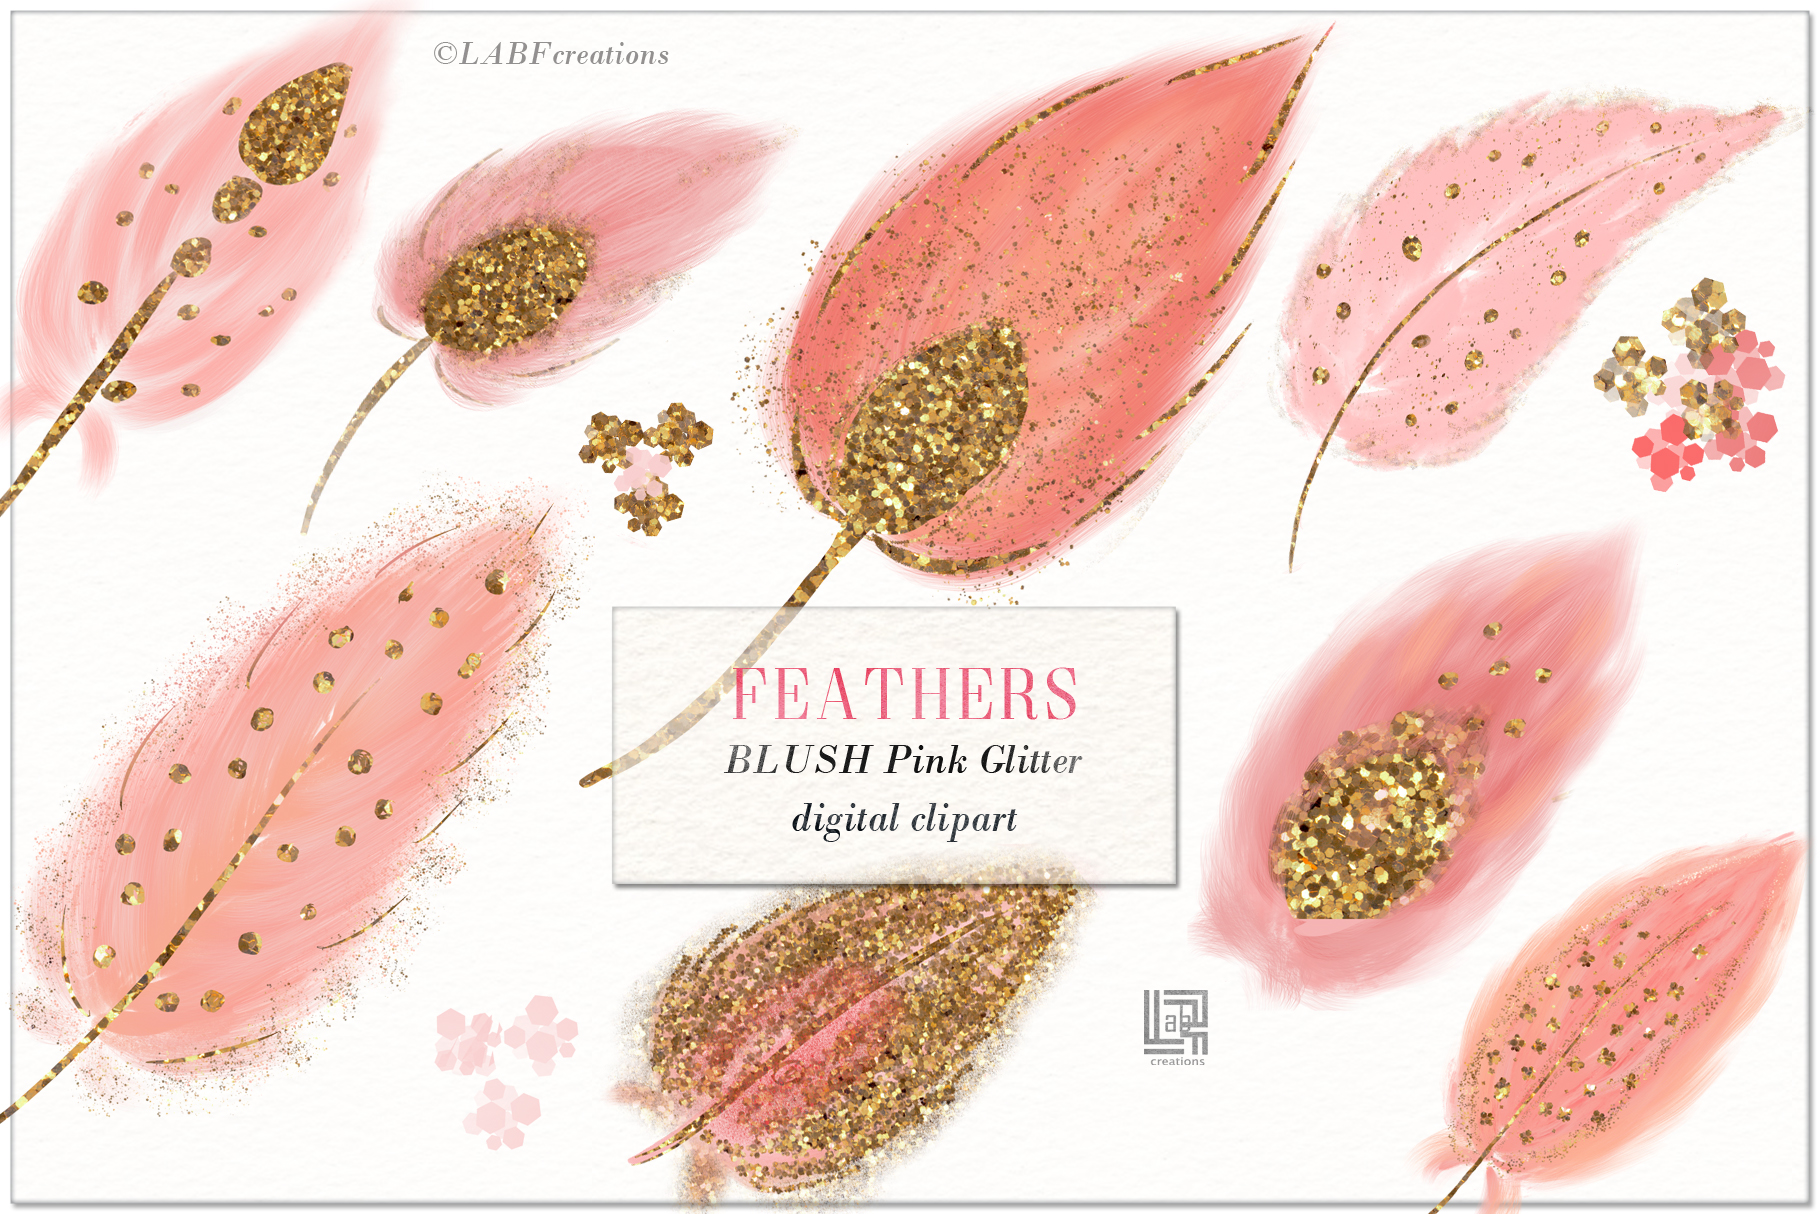 Feathers. Blush pink and Gold glitter. Digital Clipart. | Ha example image 2